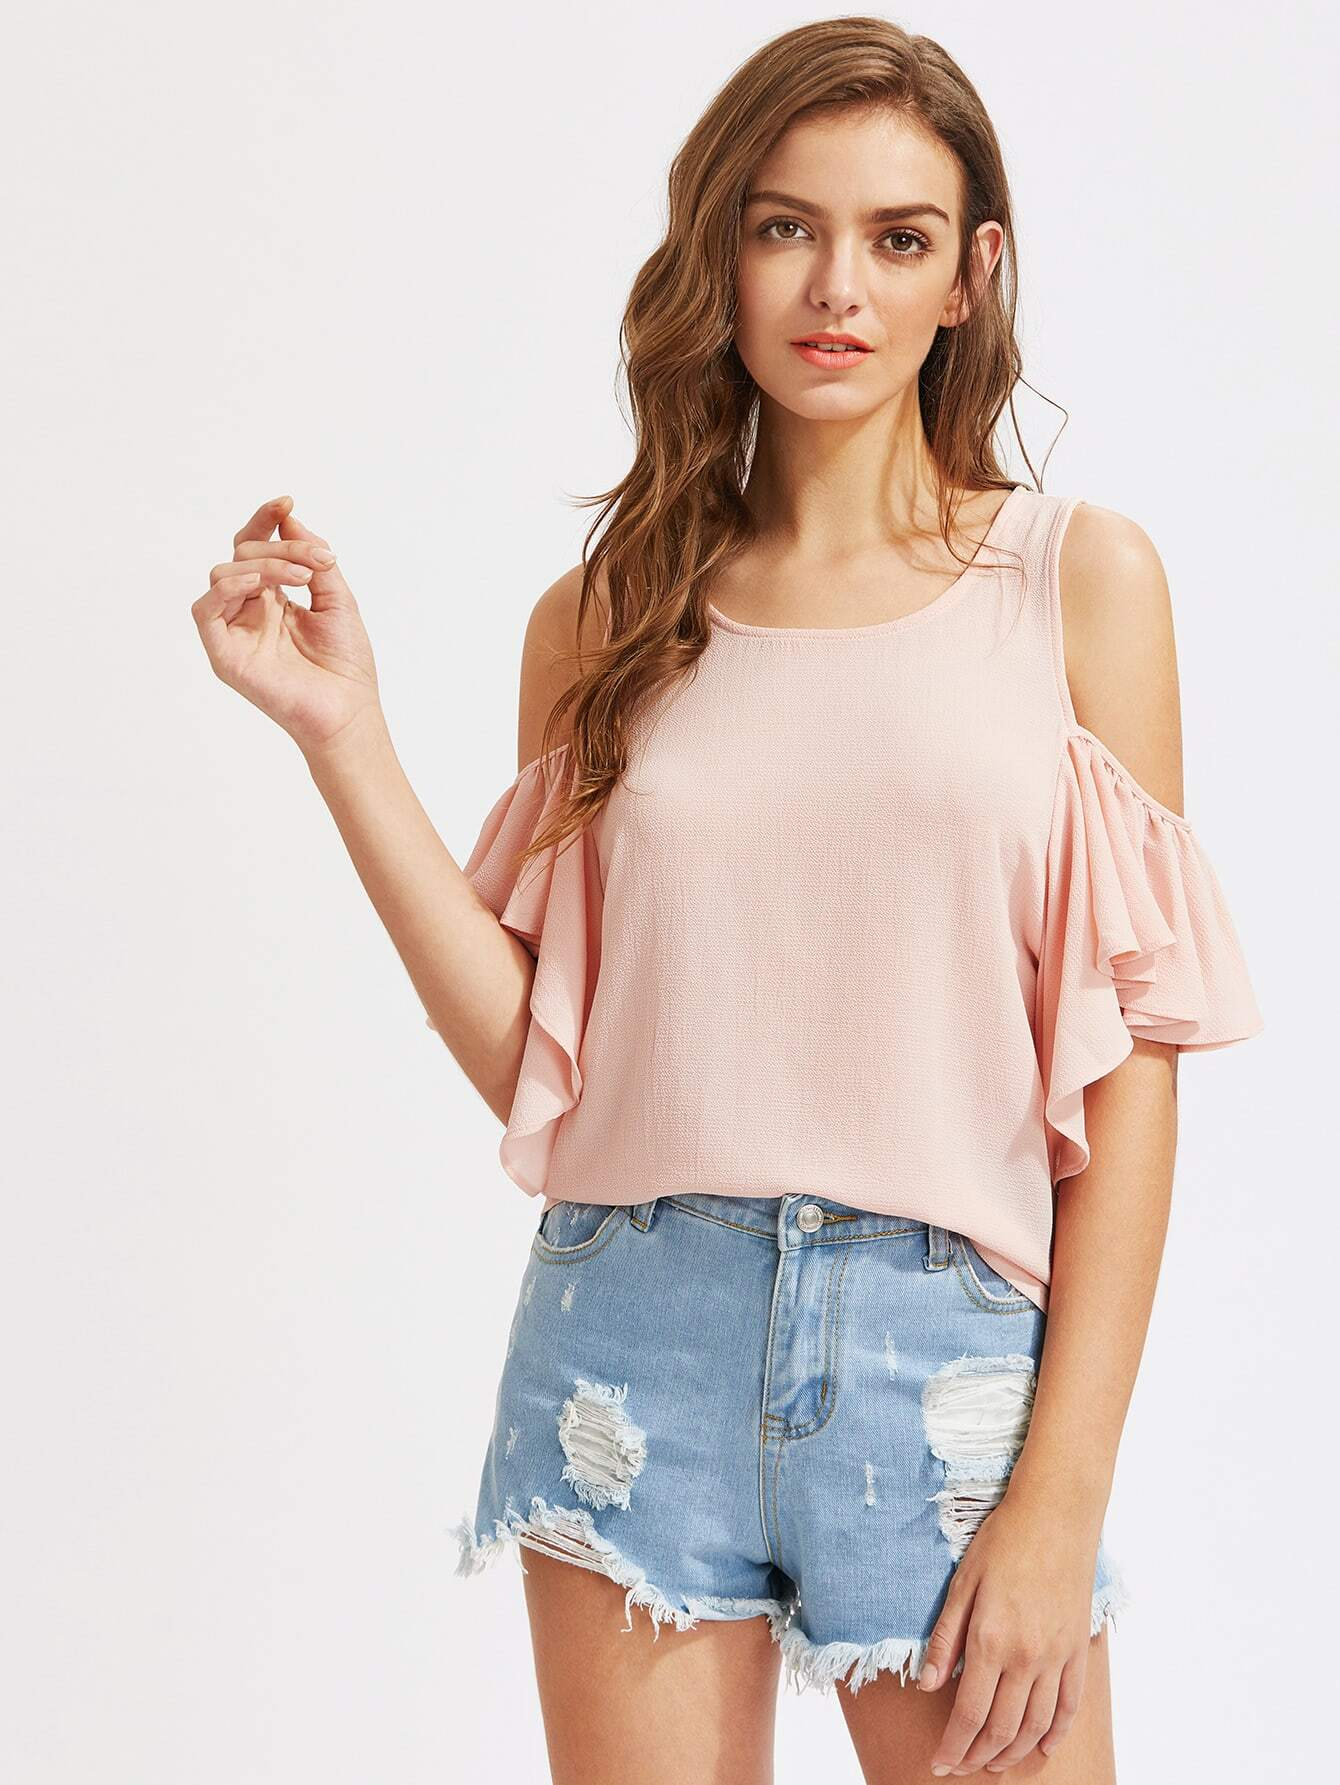 Buy the latest open shoulder tops cheap shop fashion style with free shipping, and check out our daily updated new arrival open shoulder tops at palmmetrf1.ga